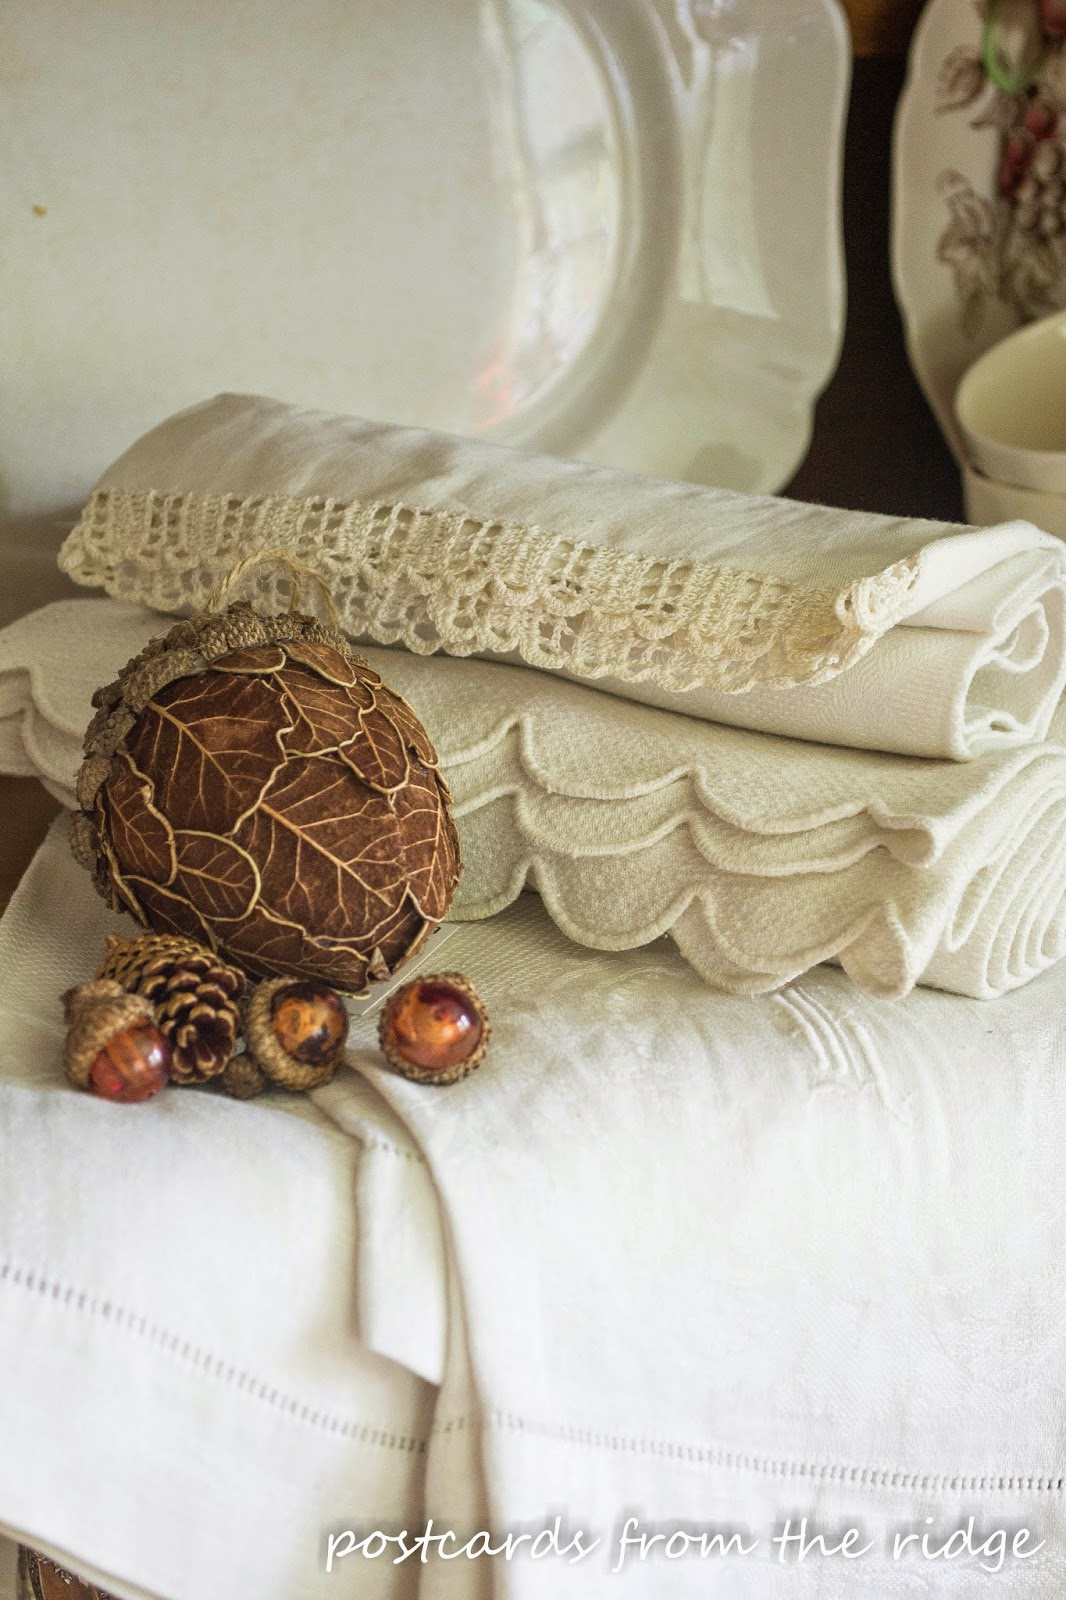 Vintage fall decor. Swoon! Lots of great ideas for using vintage, natural, and farmhouse style decor for fall.